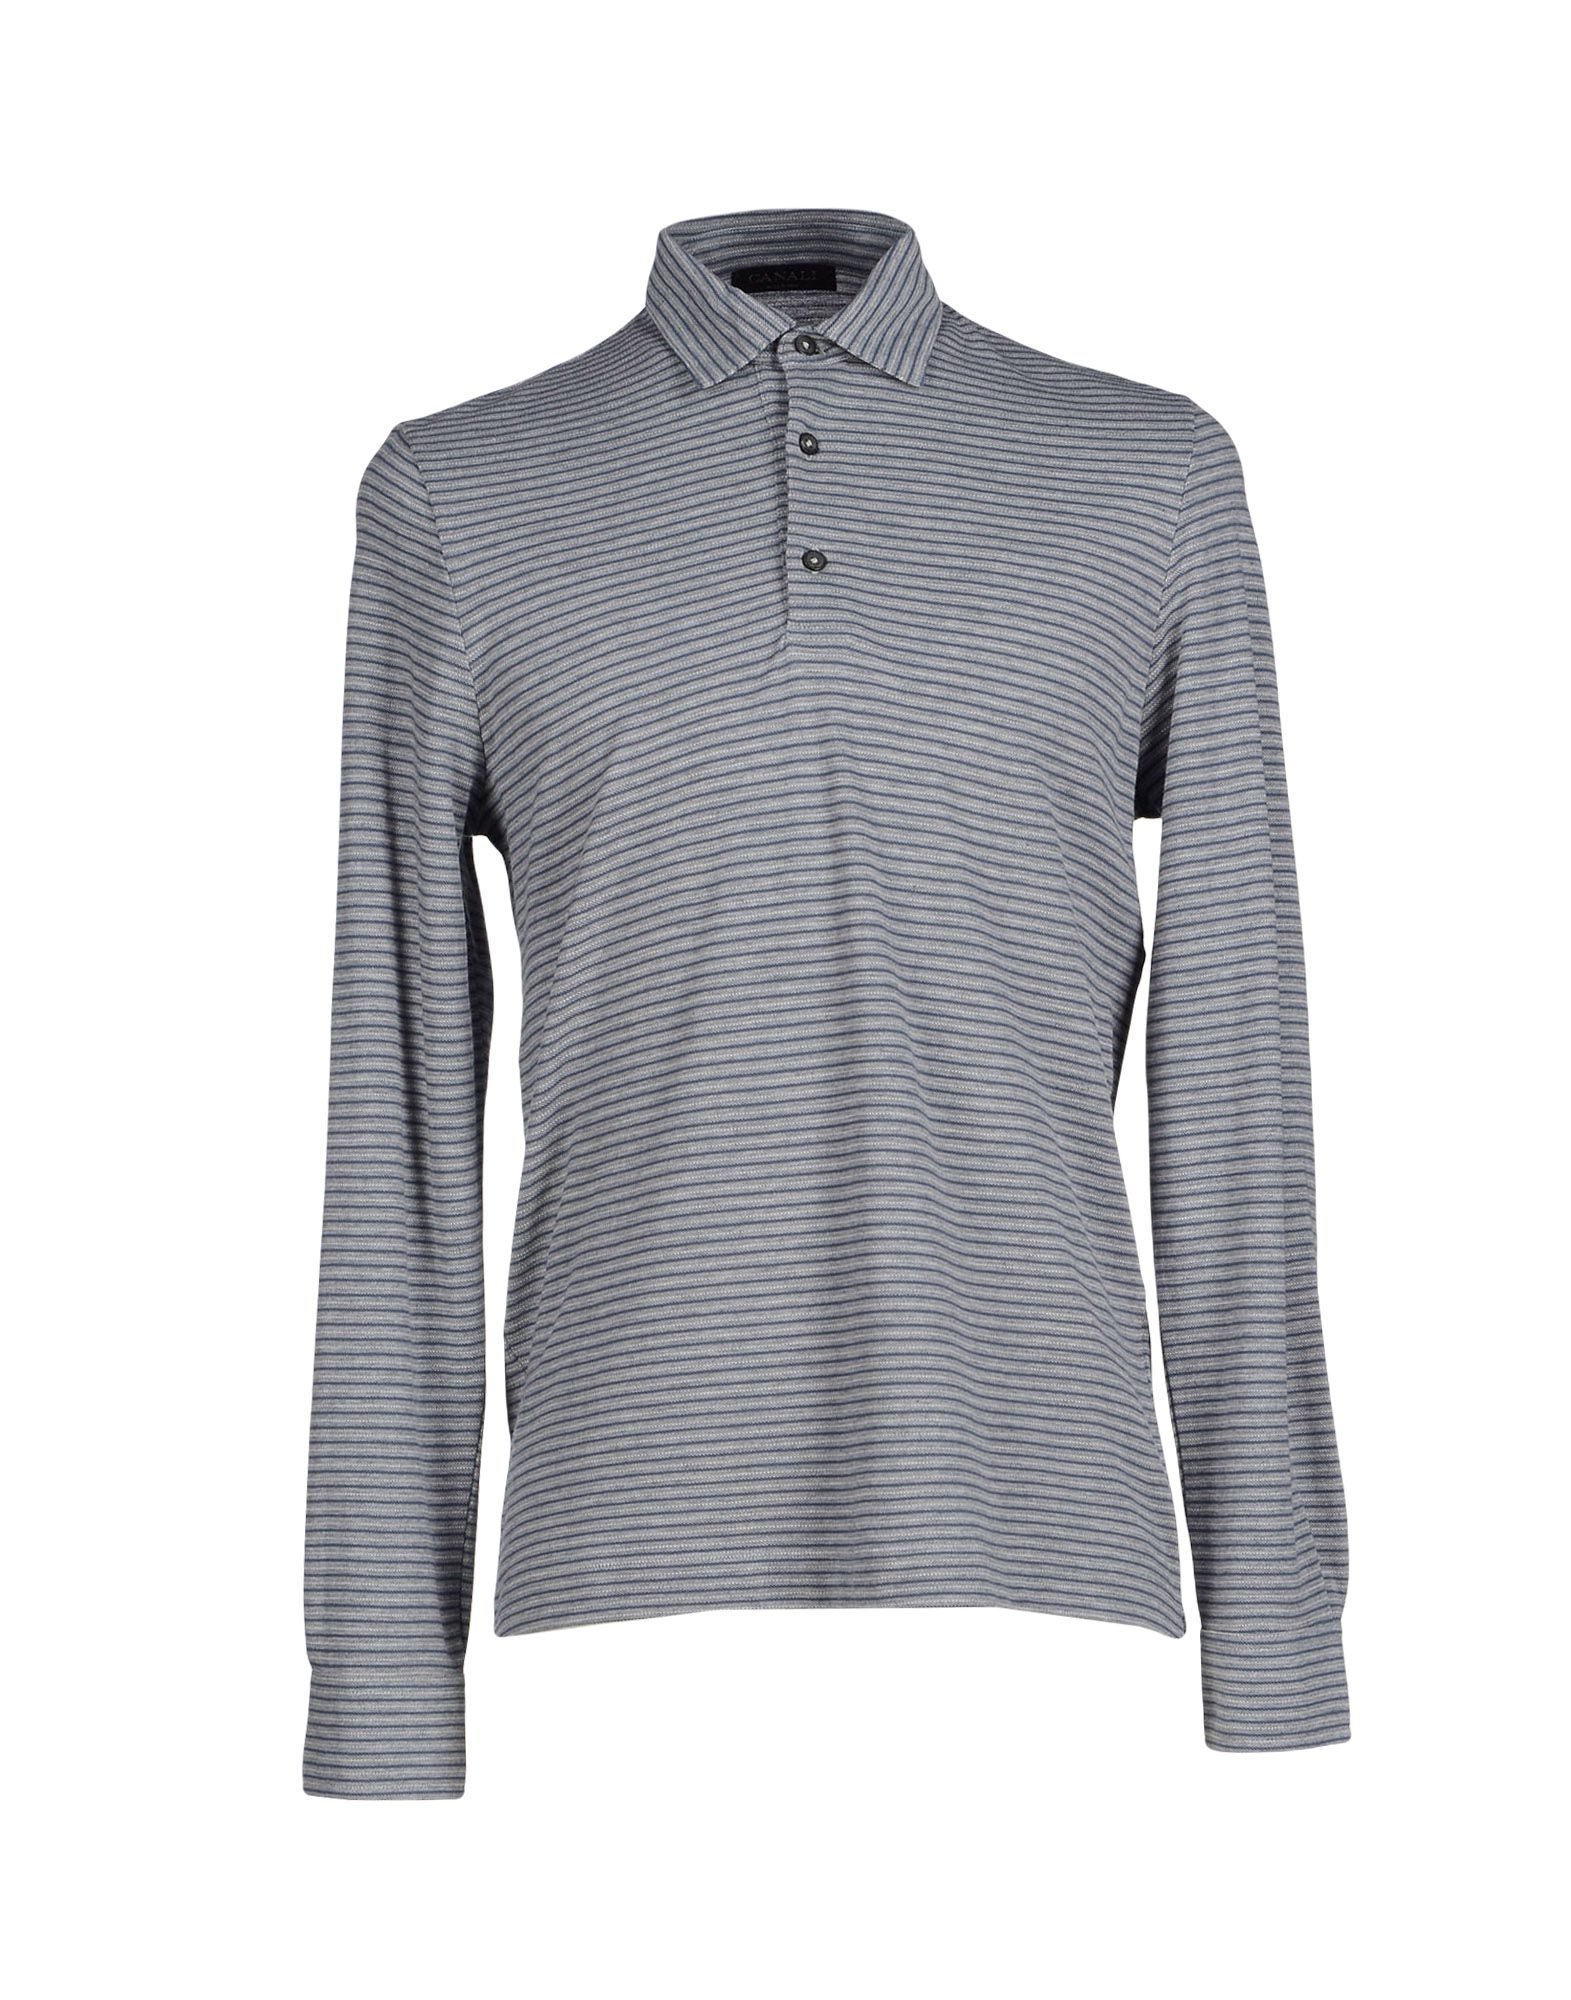 721a6496 Lyst - Canali Polo Shirt in Gray for Men